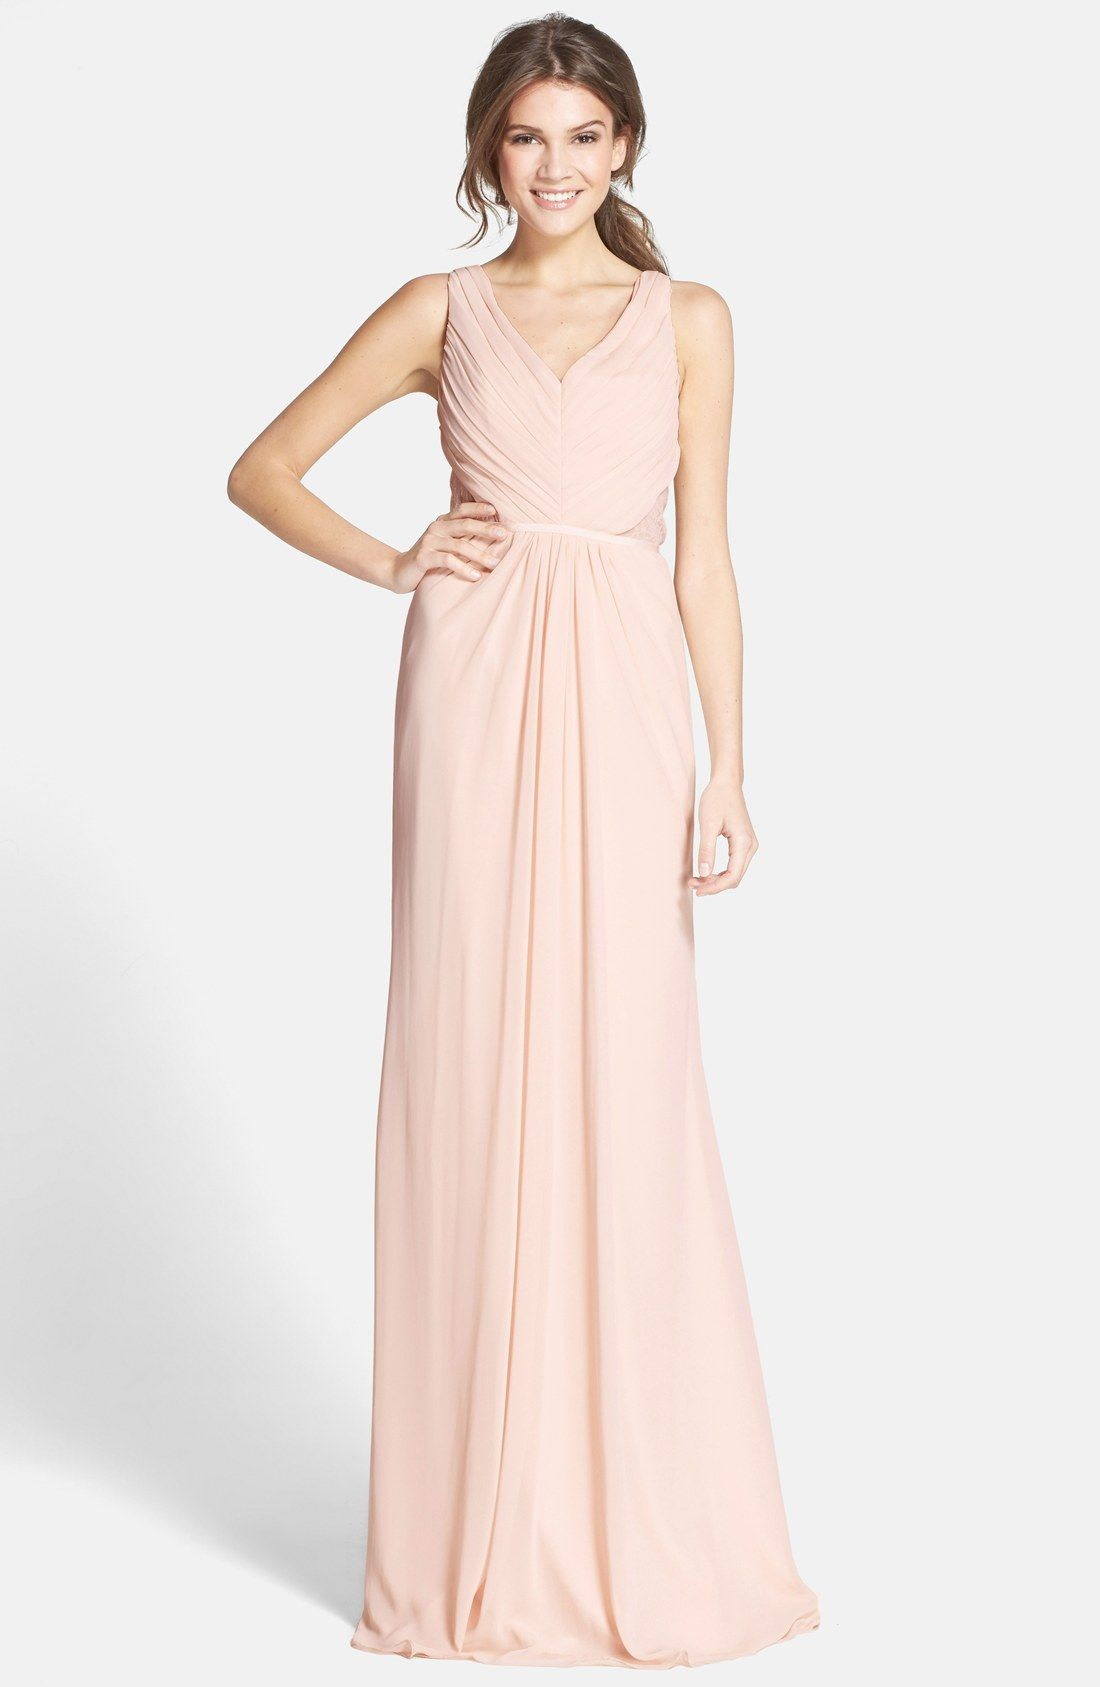 Monique Lhuillier Bridesmaids Lace Back Chiffon Gown | Mixed ...